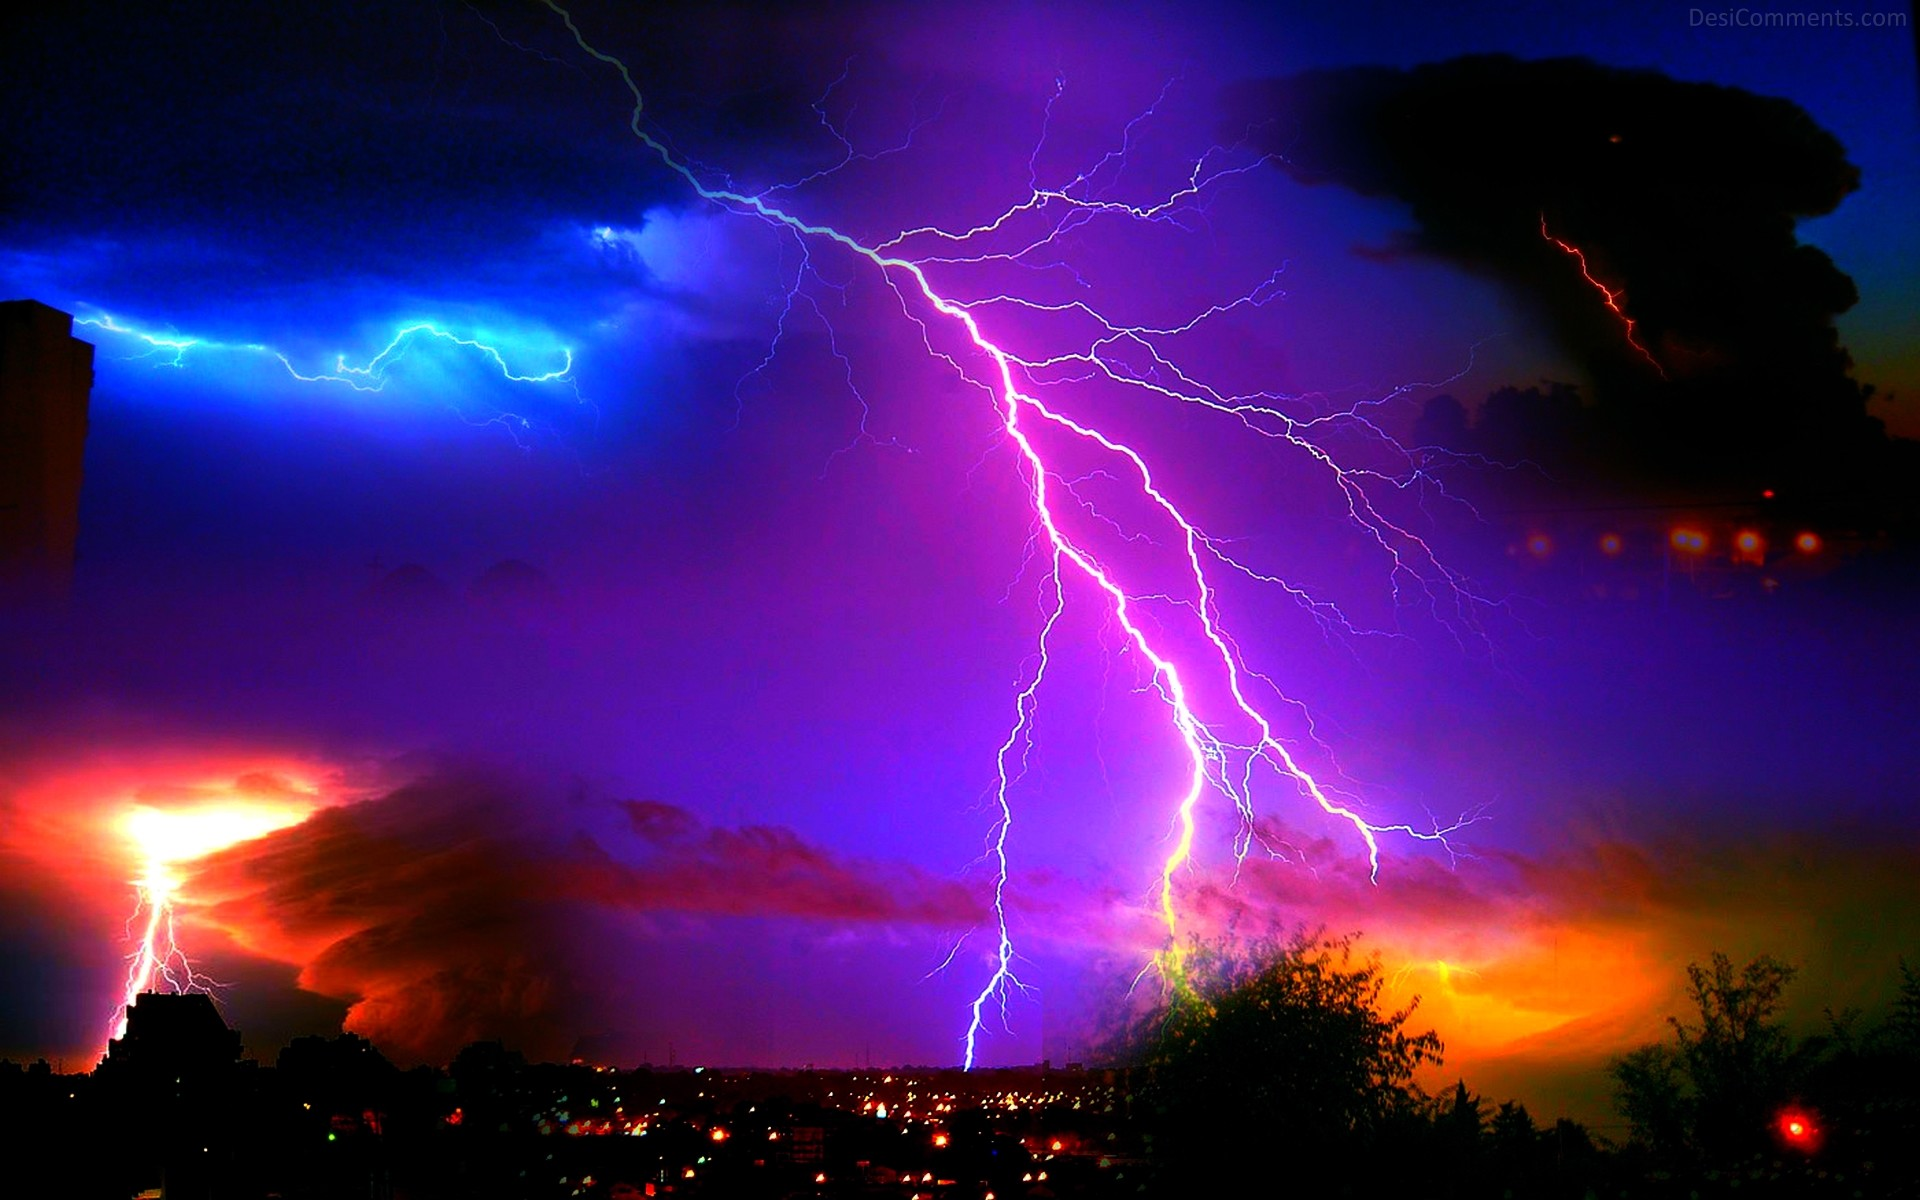 Force of nature wallpapers page 7 - Colorful nature pics ...